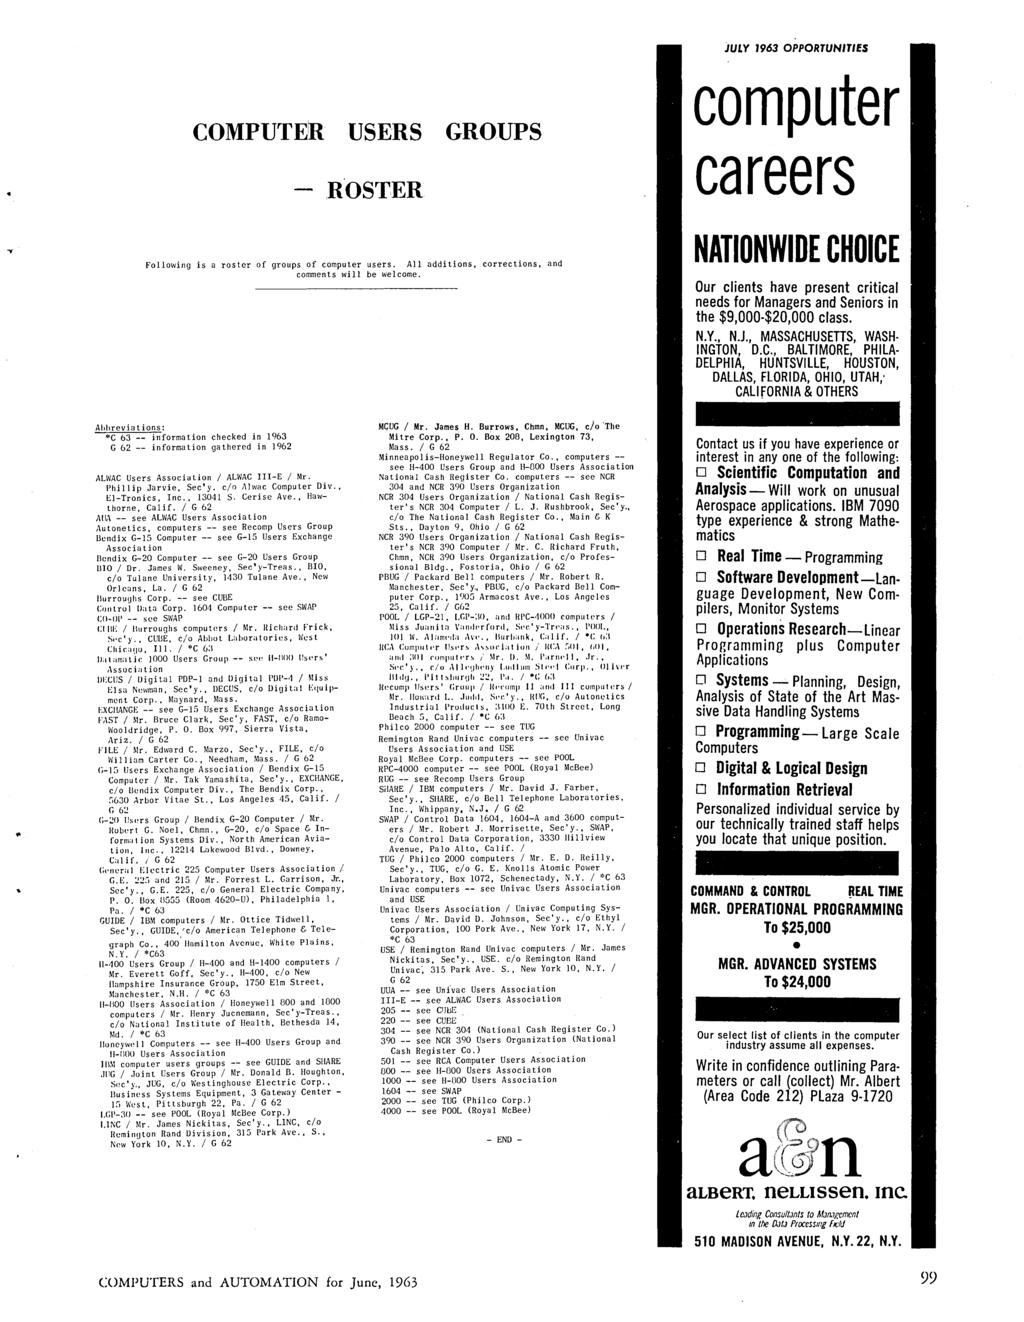 JULY 1963 OPPORTUNITIES COMPUTEIR USERS GROUPS computer careers Following is a roster of groups of computer users. All additions, corrections, and comments will be welcome.